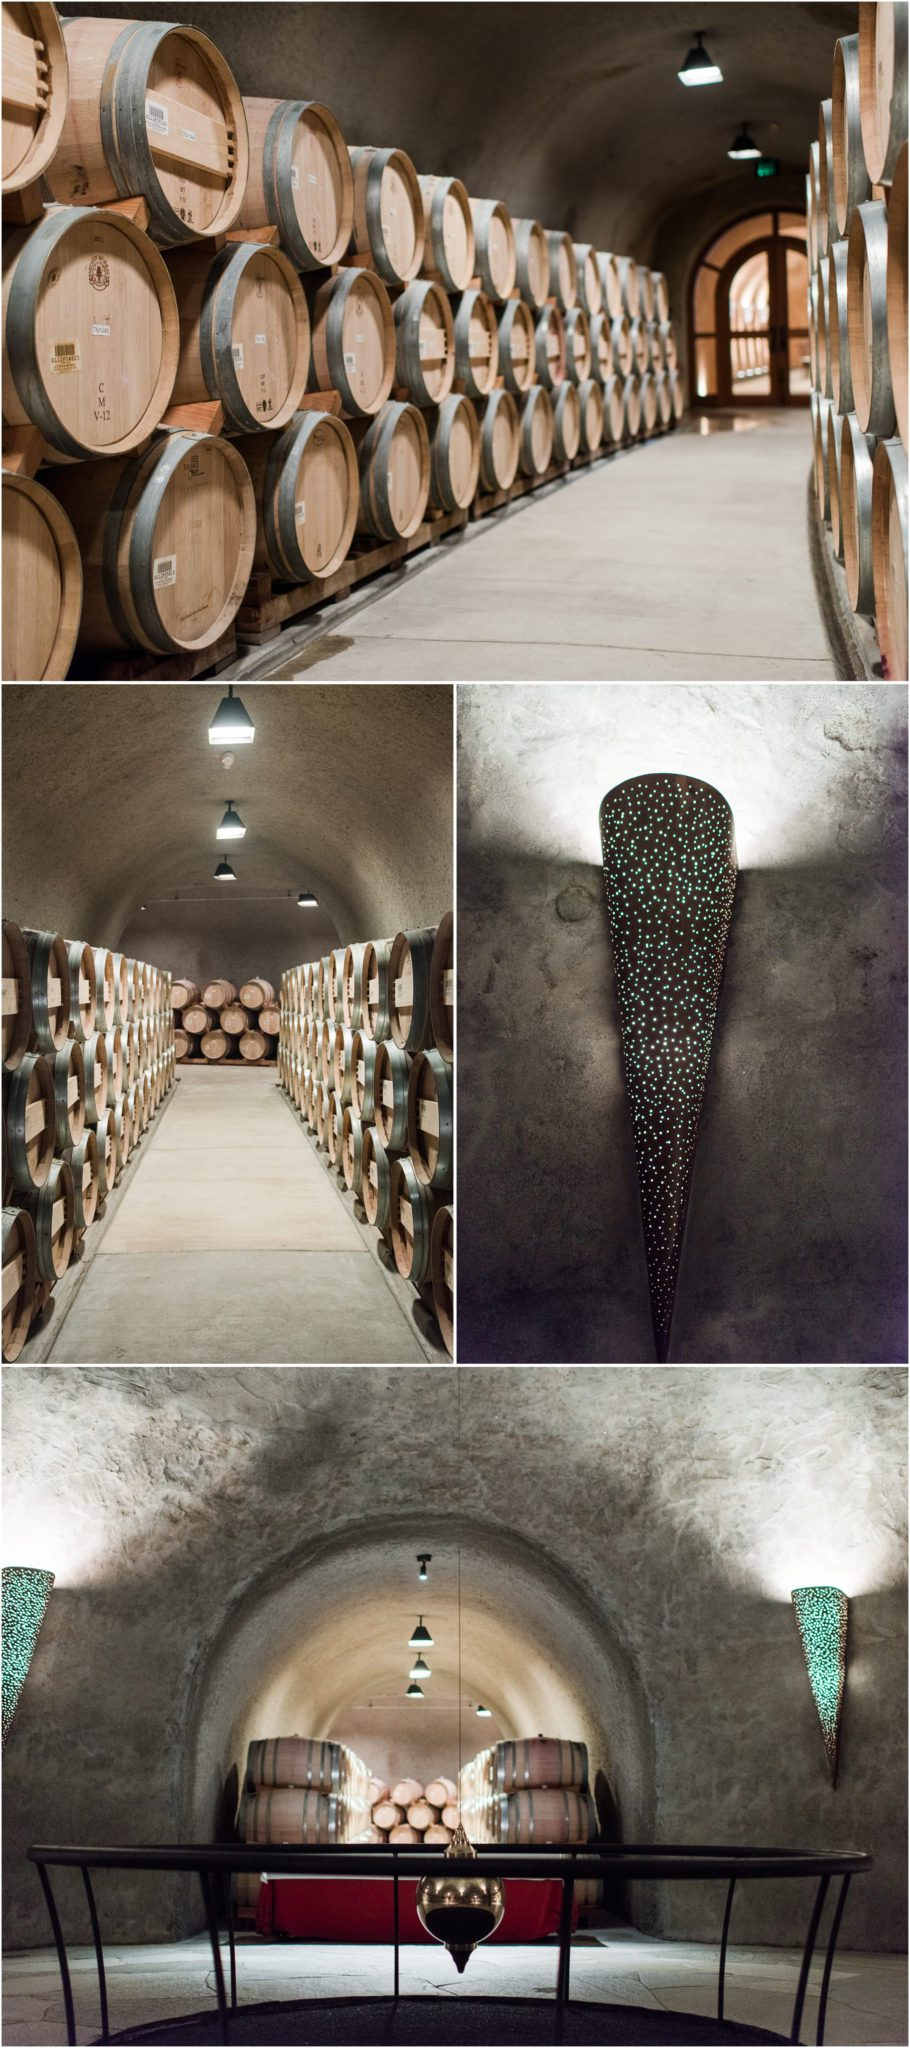 Stag's Leap Wine Cellars Cave Tour Napa Valley California